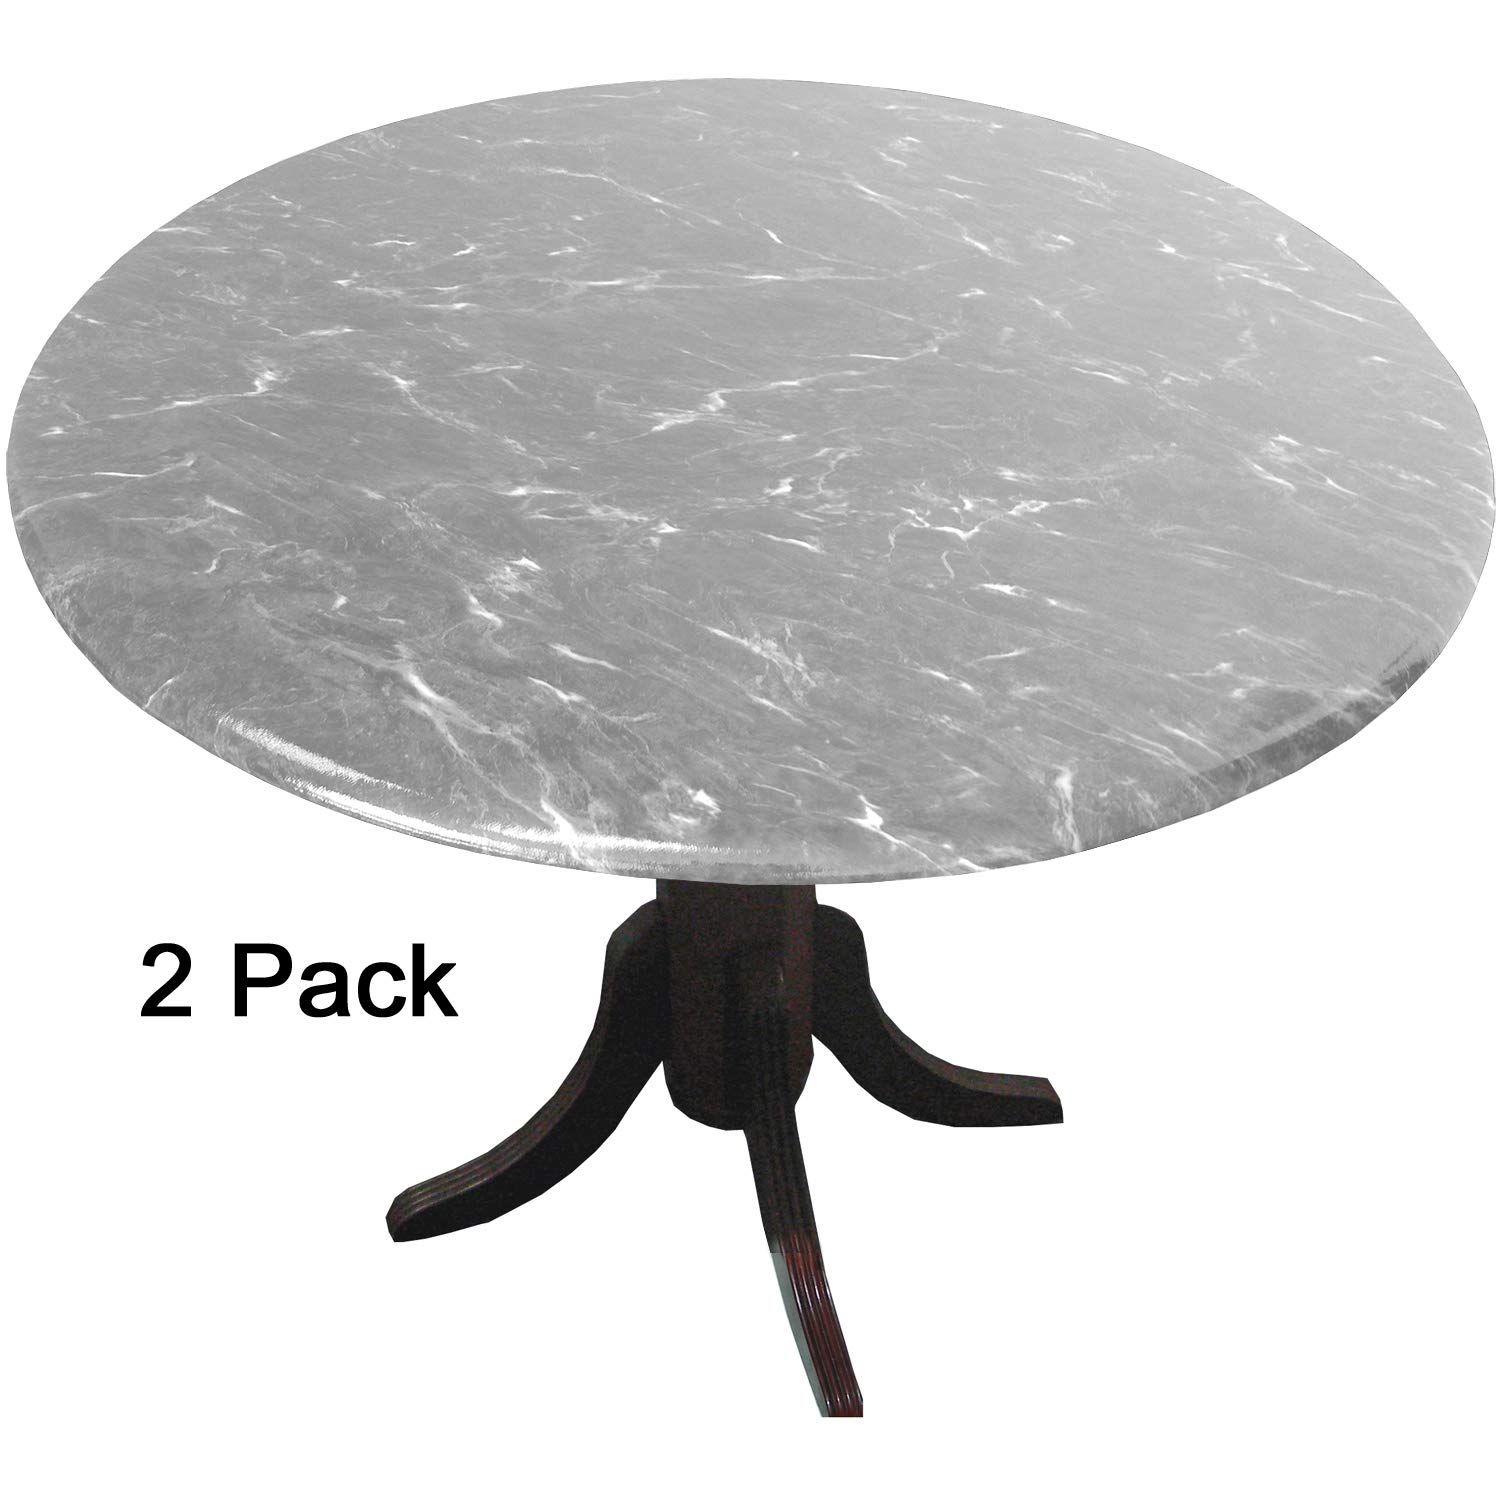 MarbleTops 2 Pack Fited Vinyl tablecloths (tablecovers, Table Covers) - Florentine Marble Gray